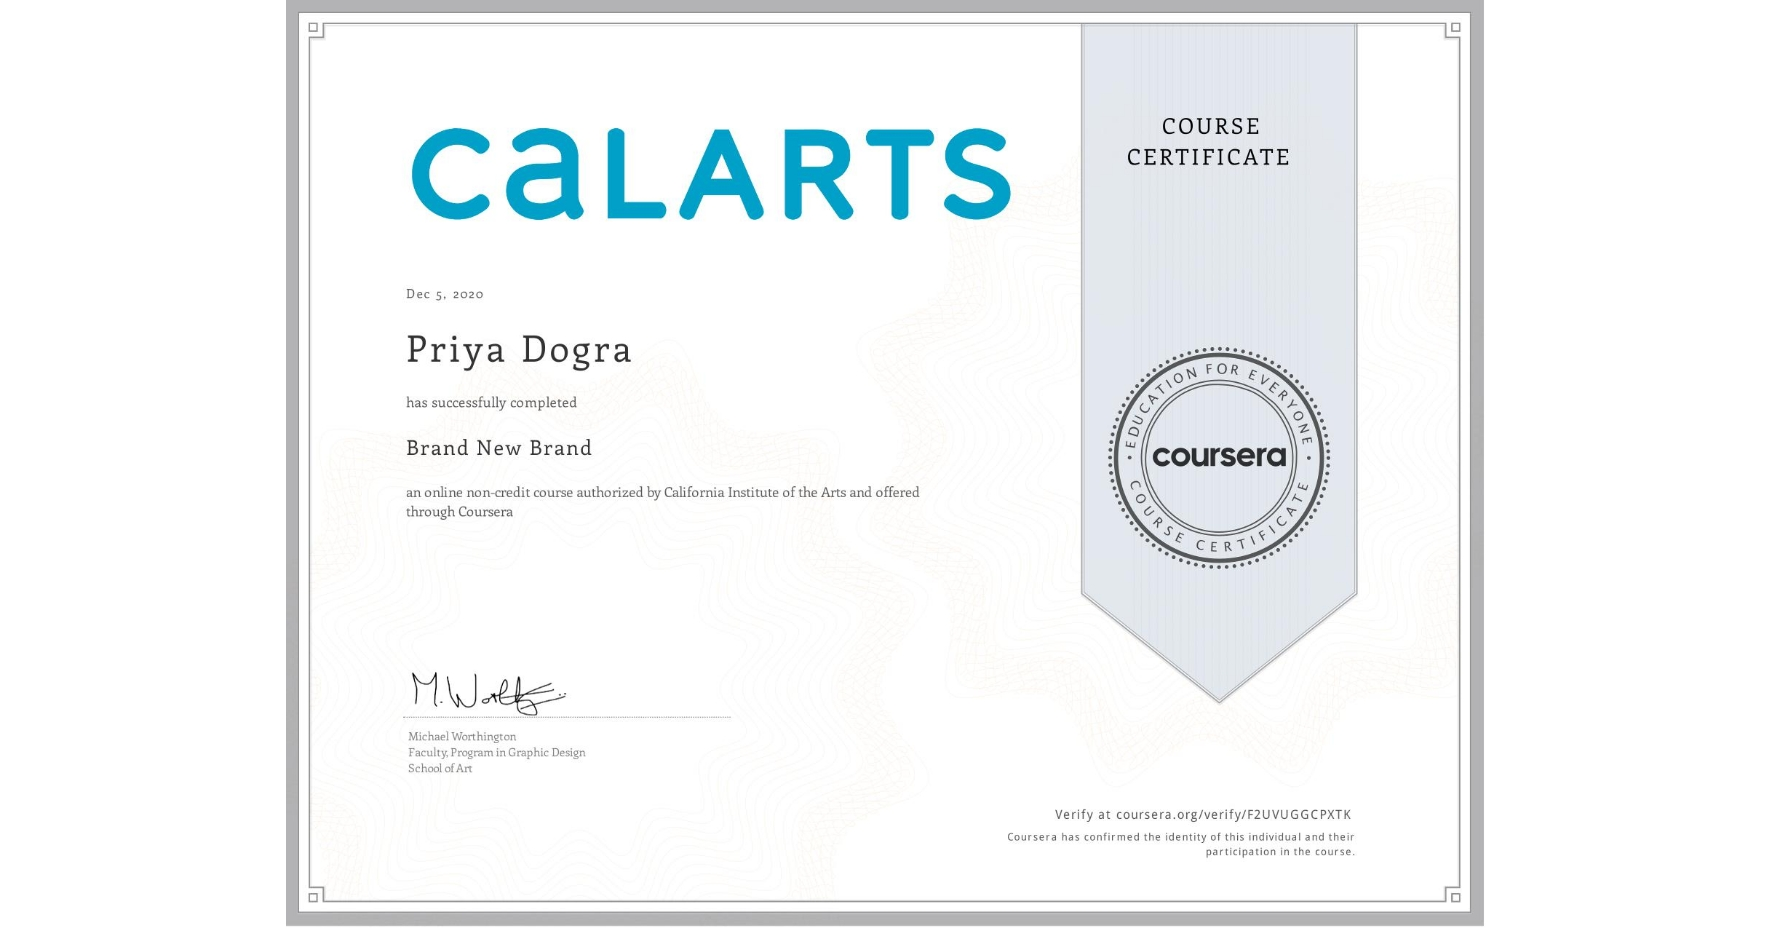 View certificate for Priya Dogra, Brand New Brand, an online non-credit course authorized by California Institute of the Arts and offered through Coursera